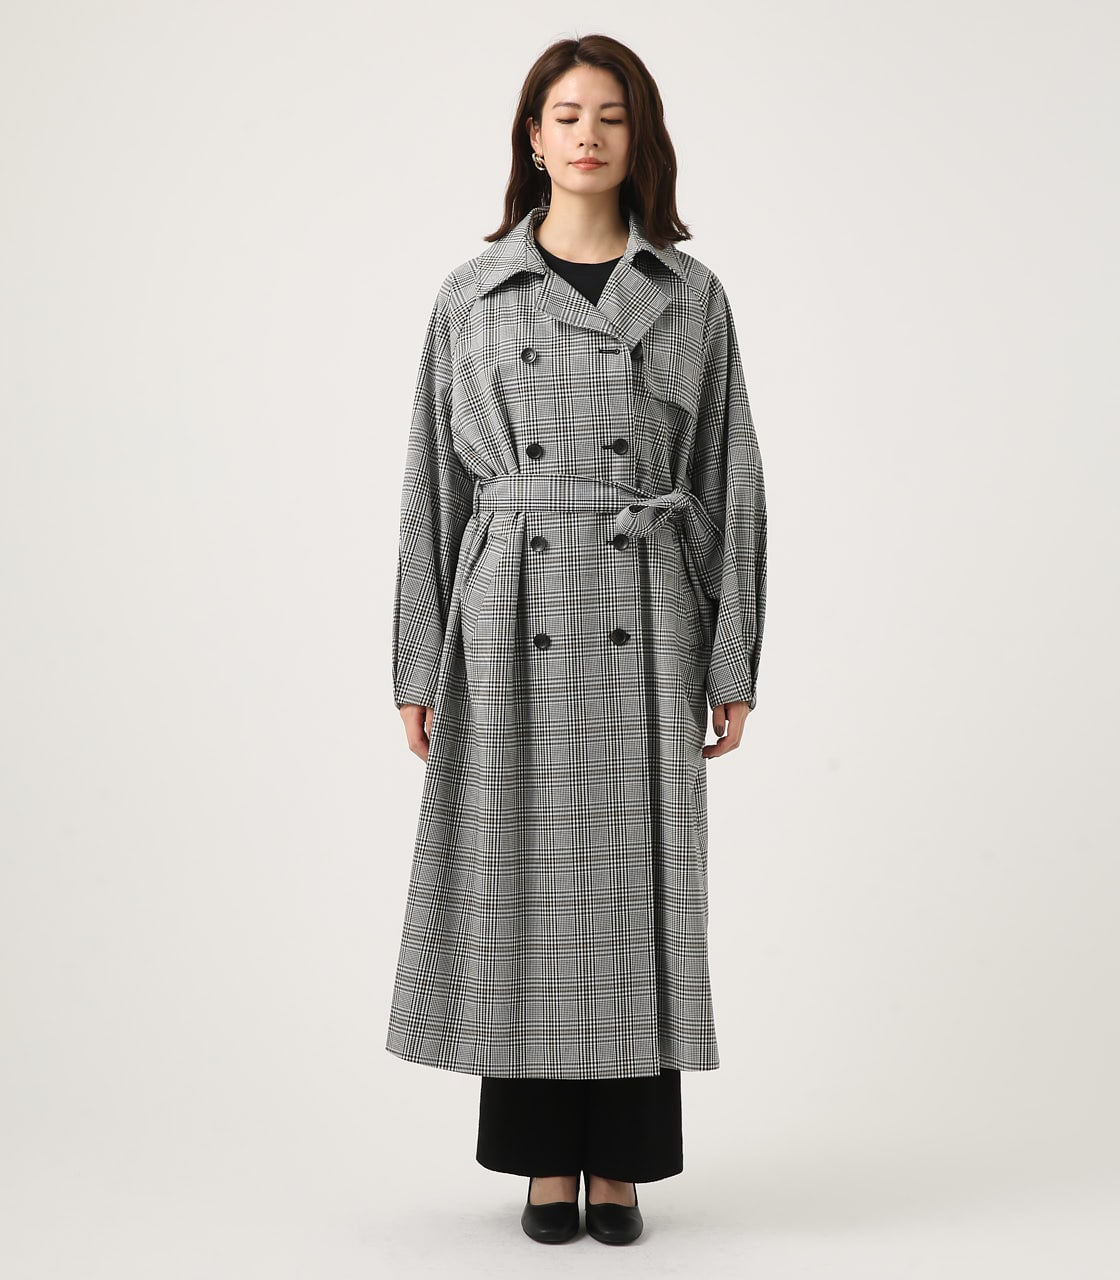 【AZUL BY MOUSSY】VOLUME SLEEVE LONG TRENCH COAT 詳細画像 柄BLK 5